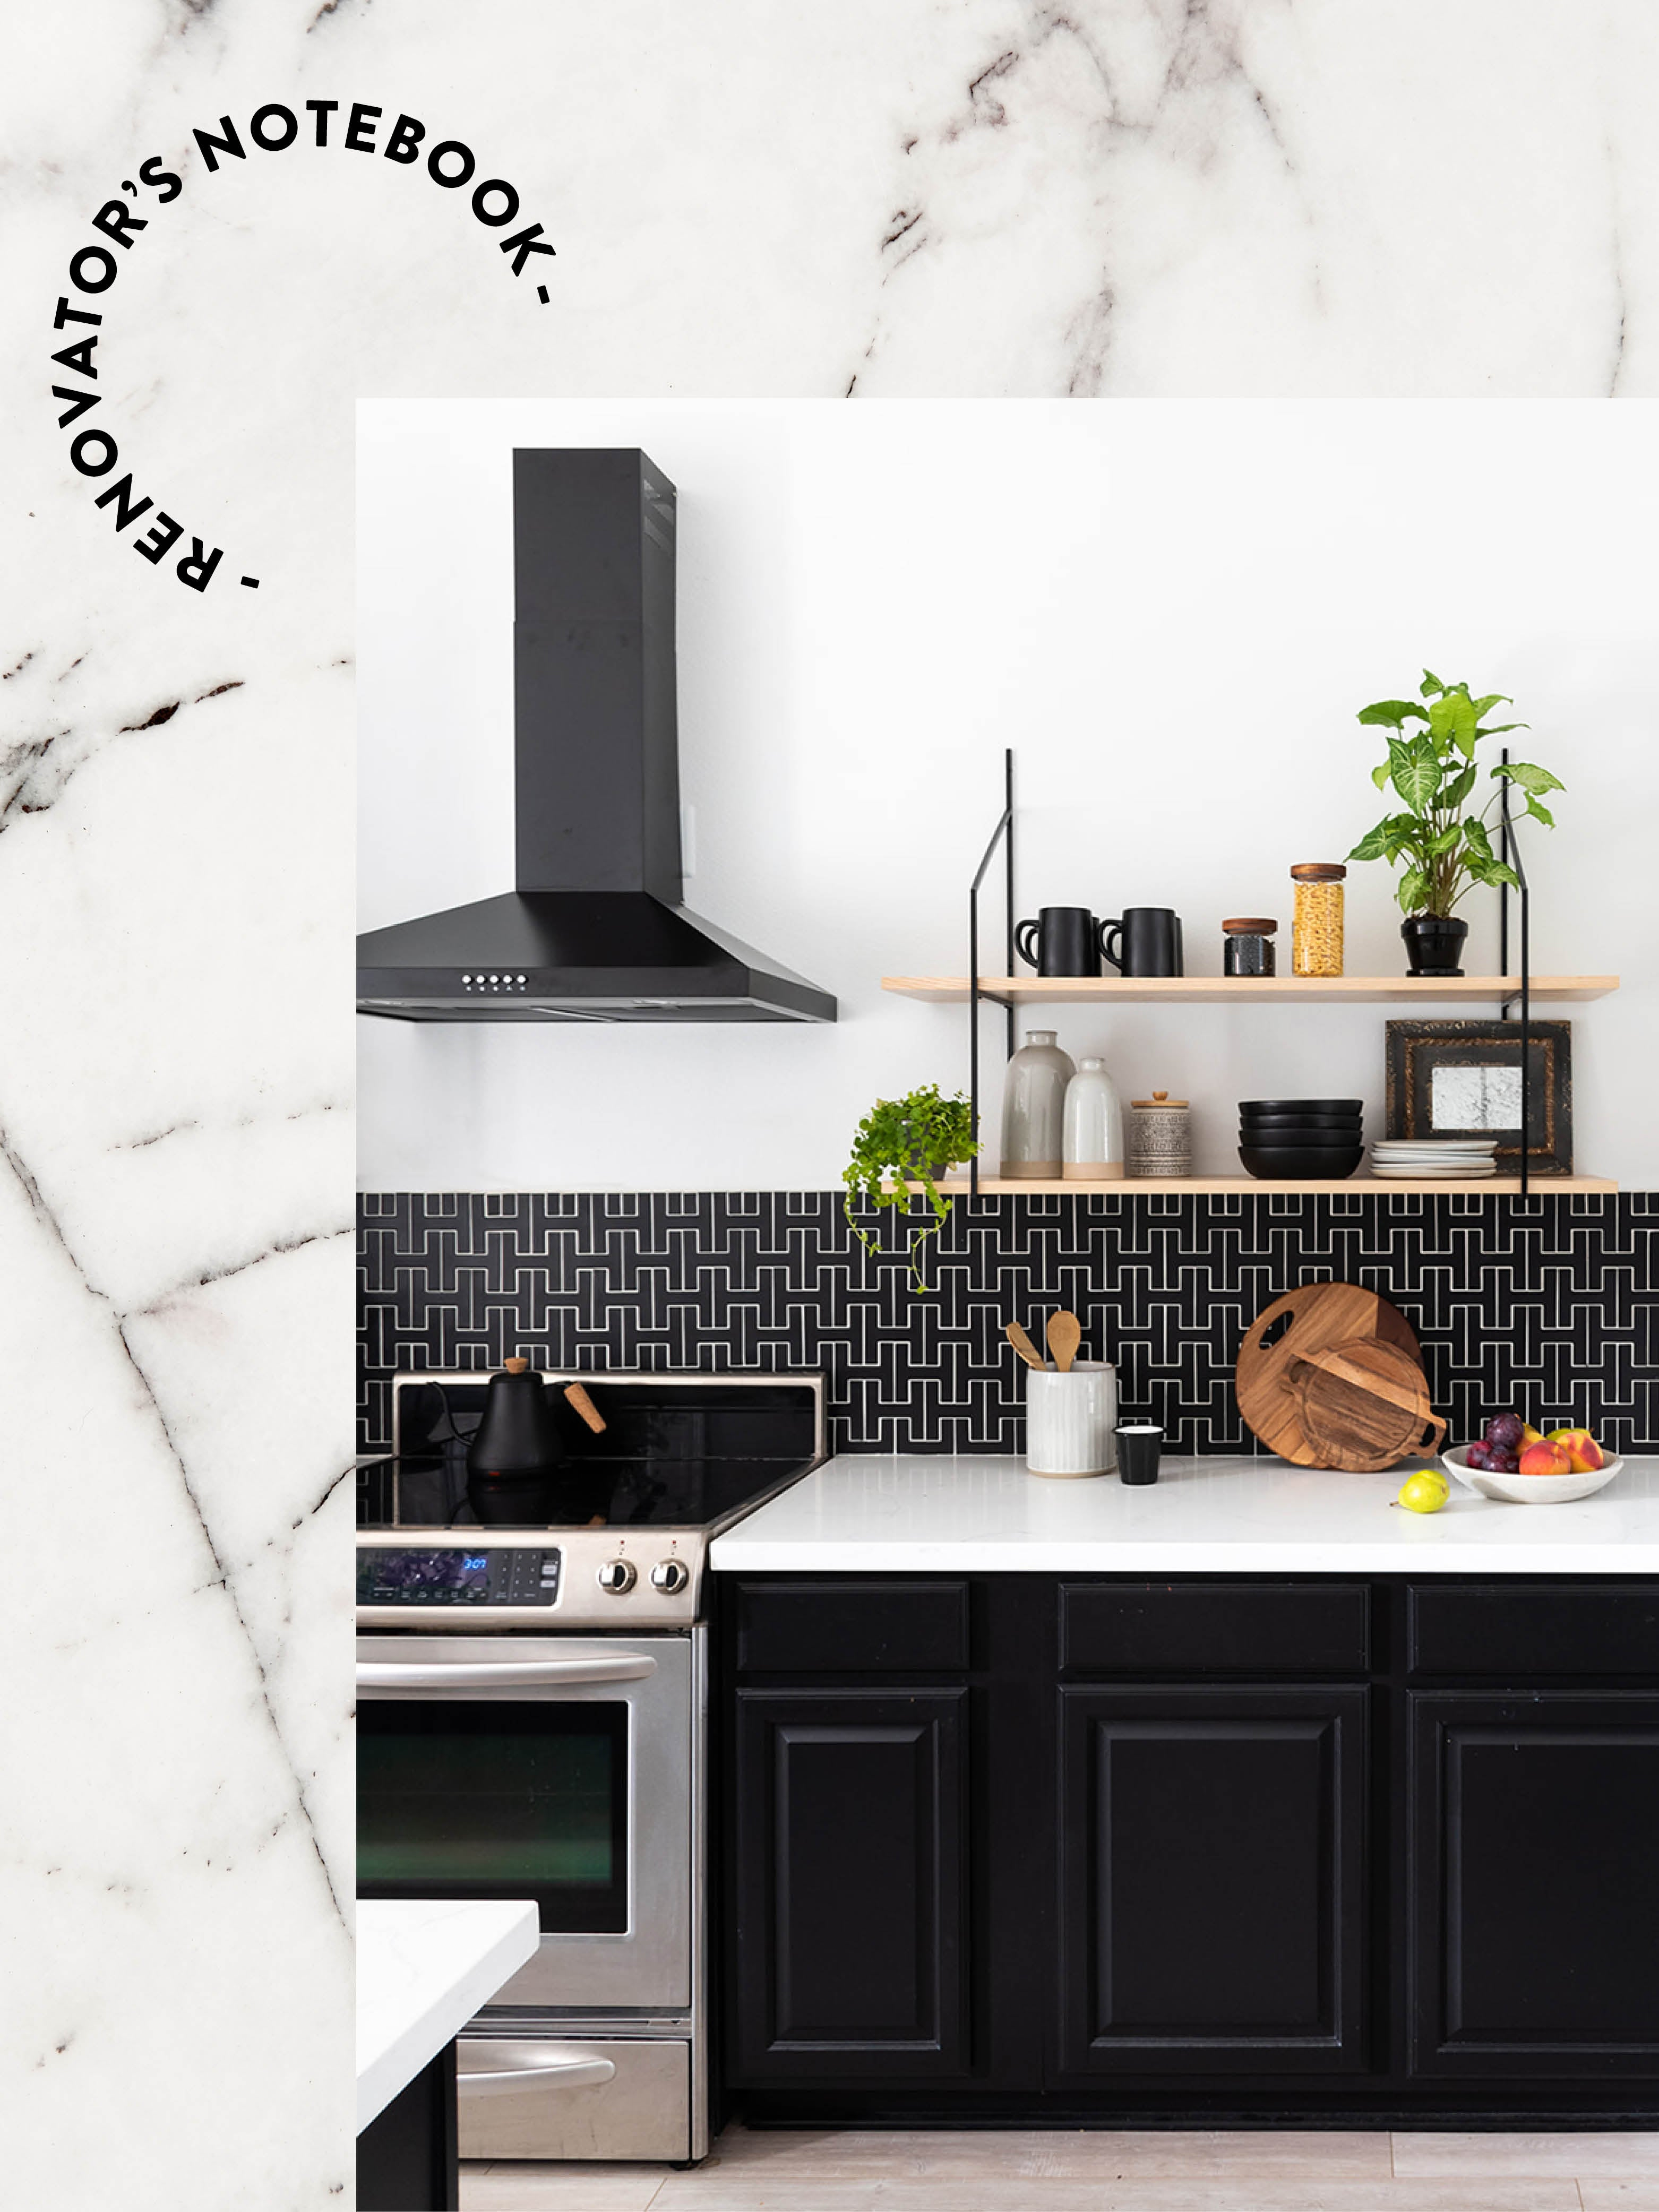 Same Cabinetry, Same Appliances, But a Brand-New-Looking Kitchen